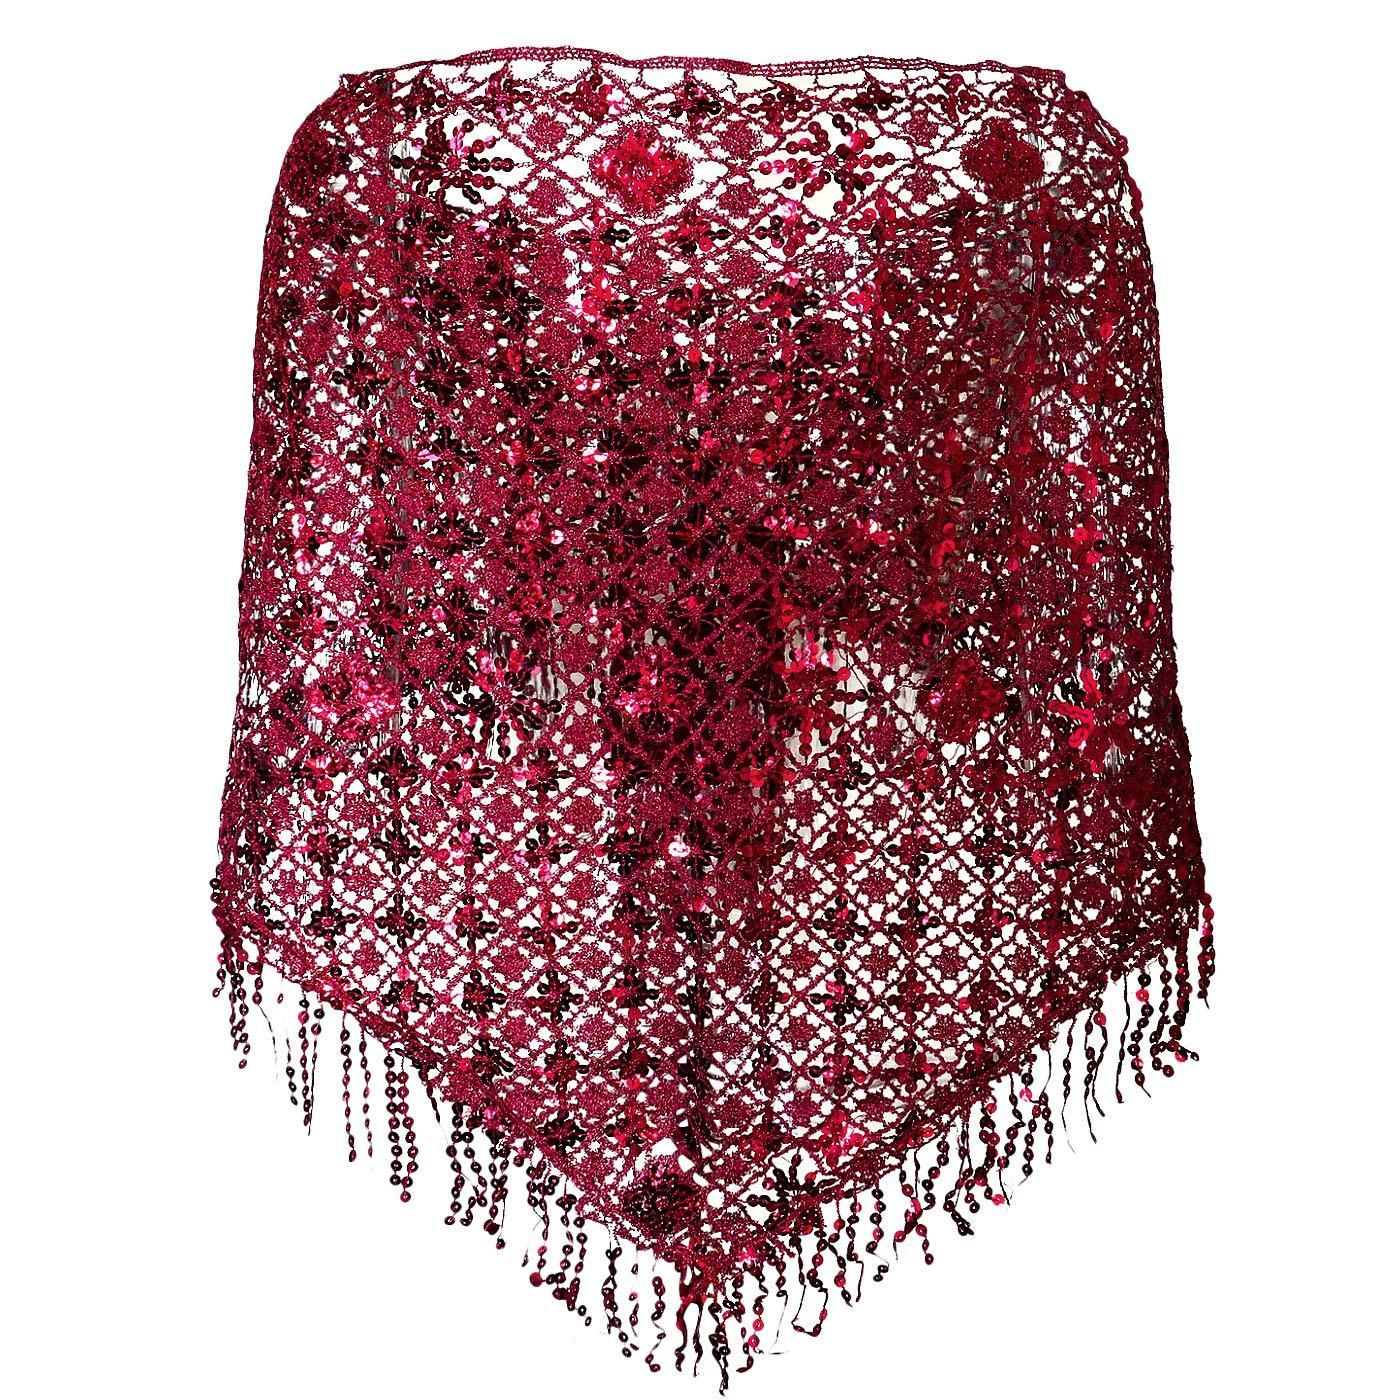 Lvow Womens Glittering 1920s Shawl Wraps Sequin Beaded Evening Cape Flapper Bolero Scarves & Wraps Wraps & Pashminas